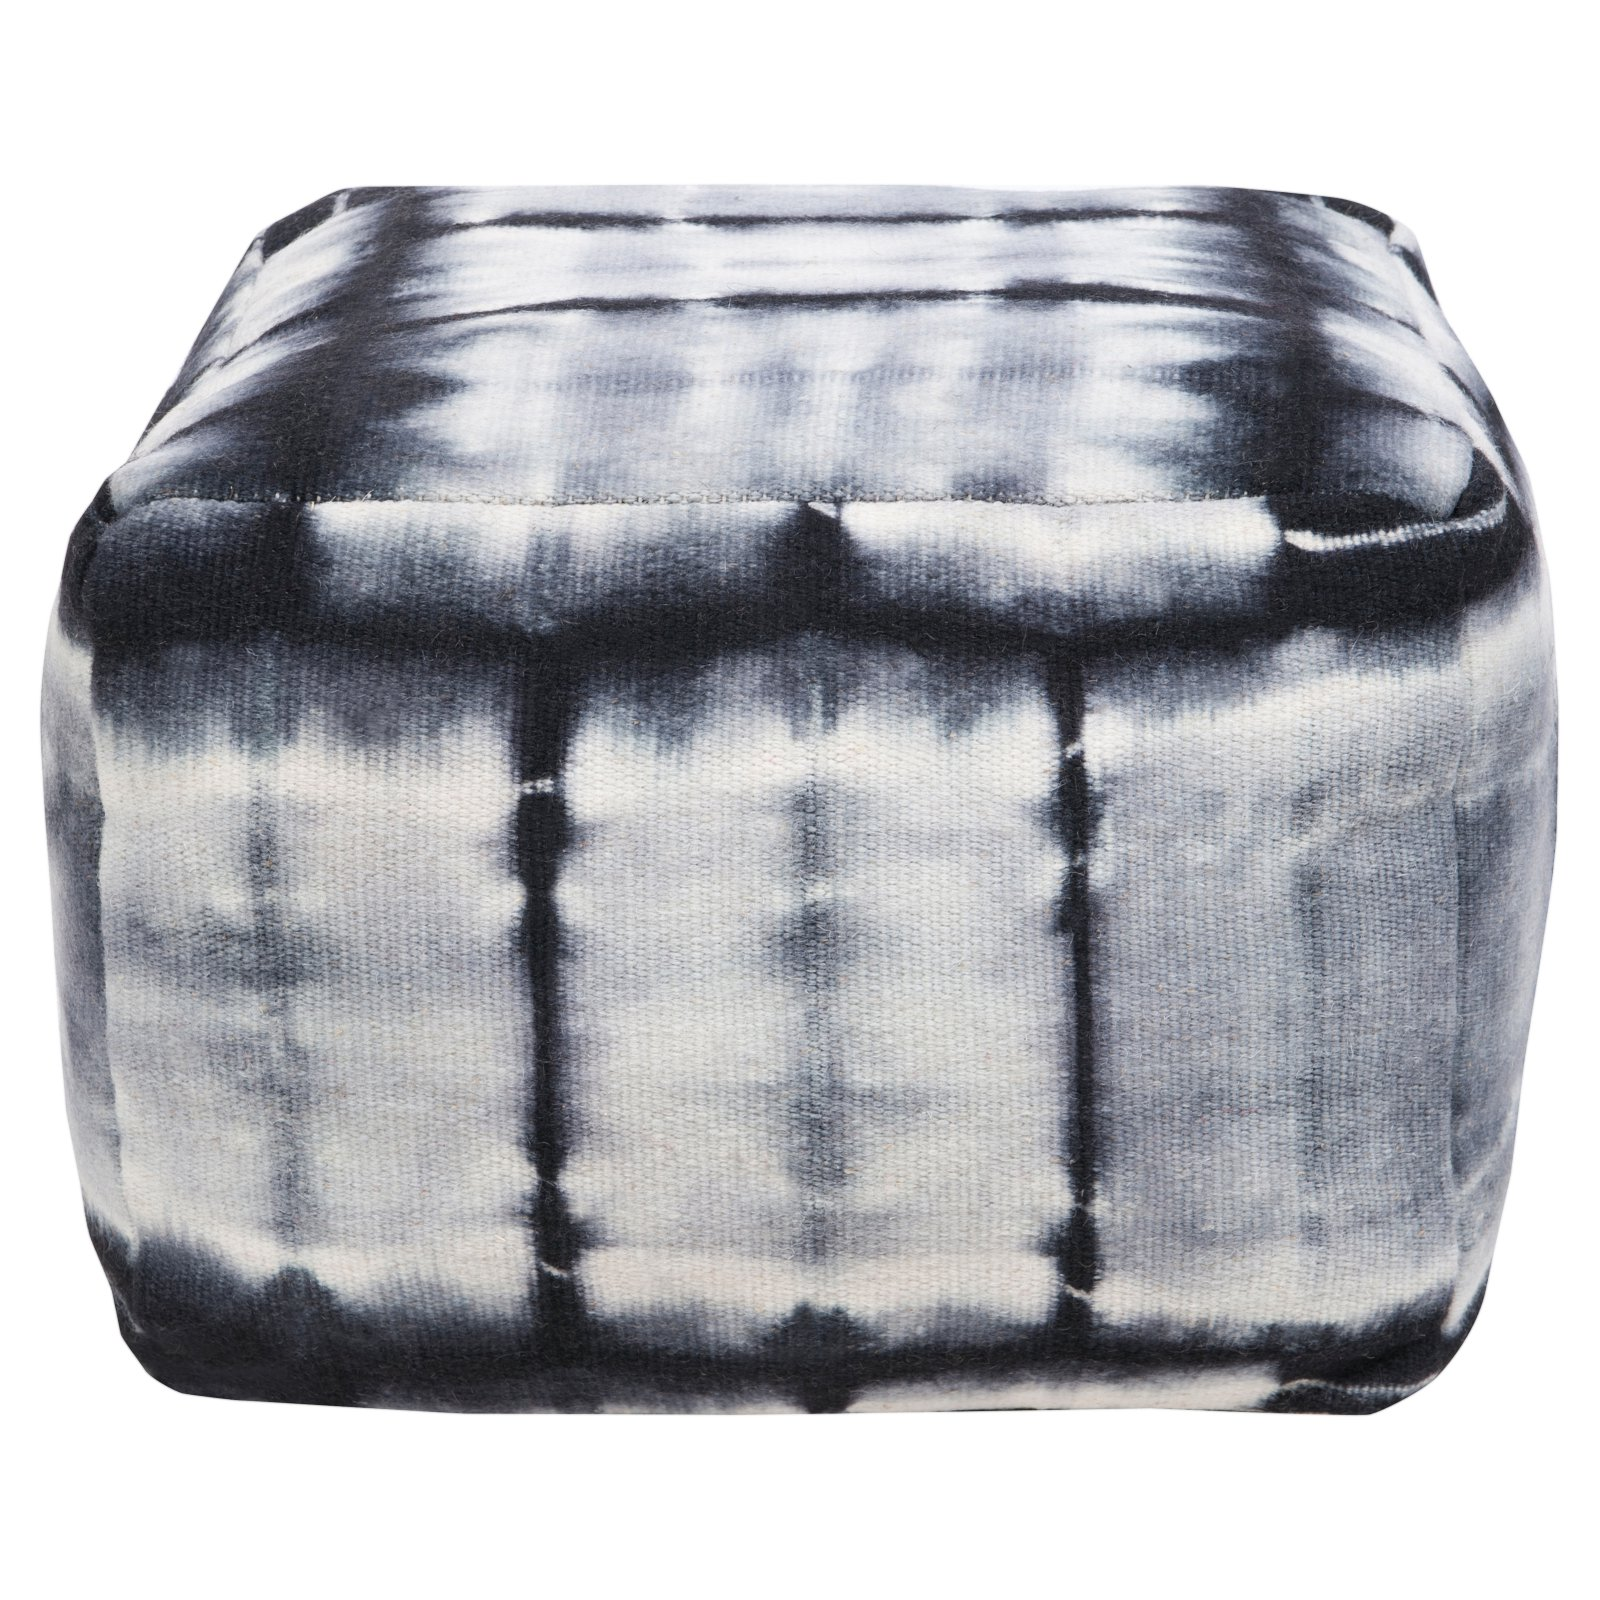 Surya 16 in. Cube Wool Pouf